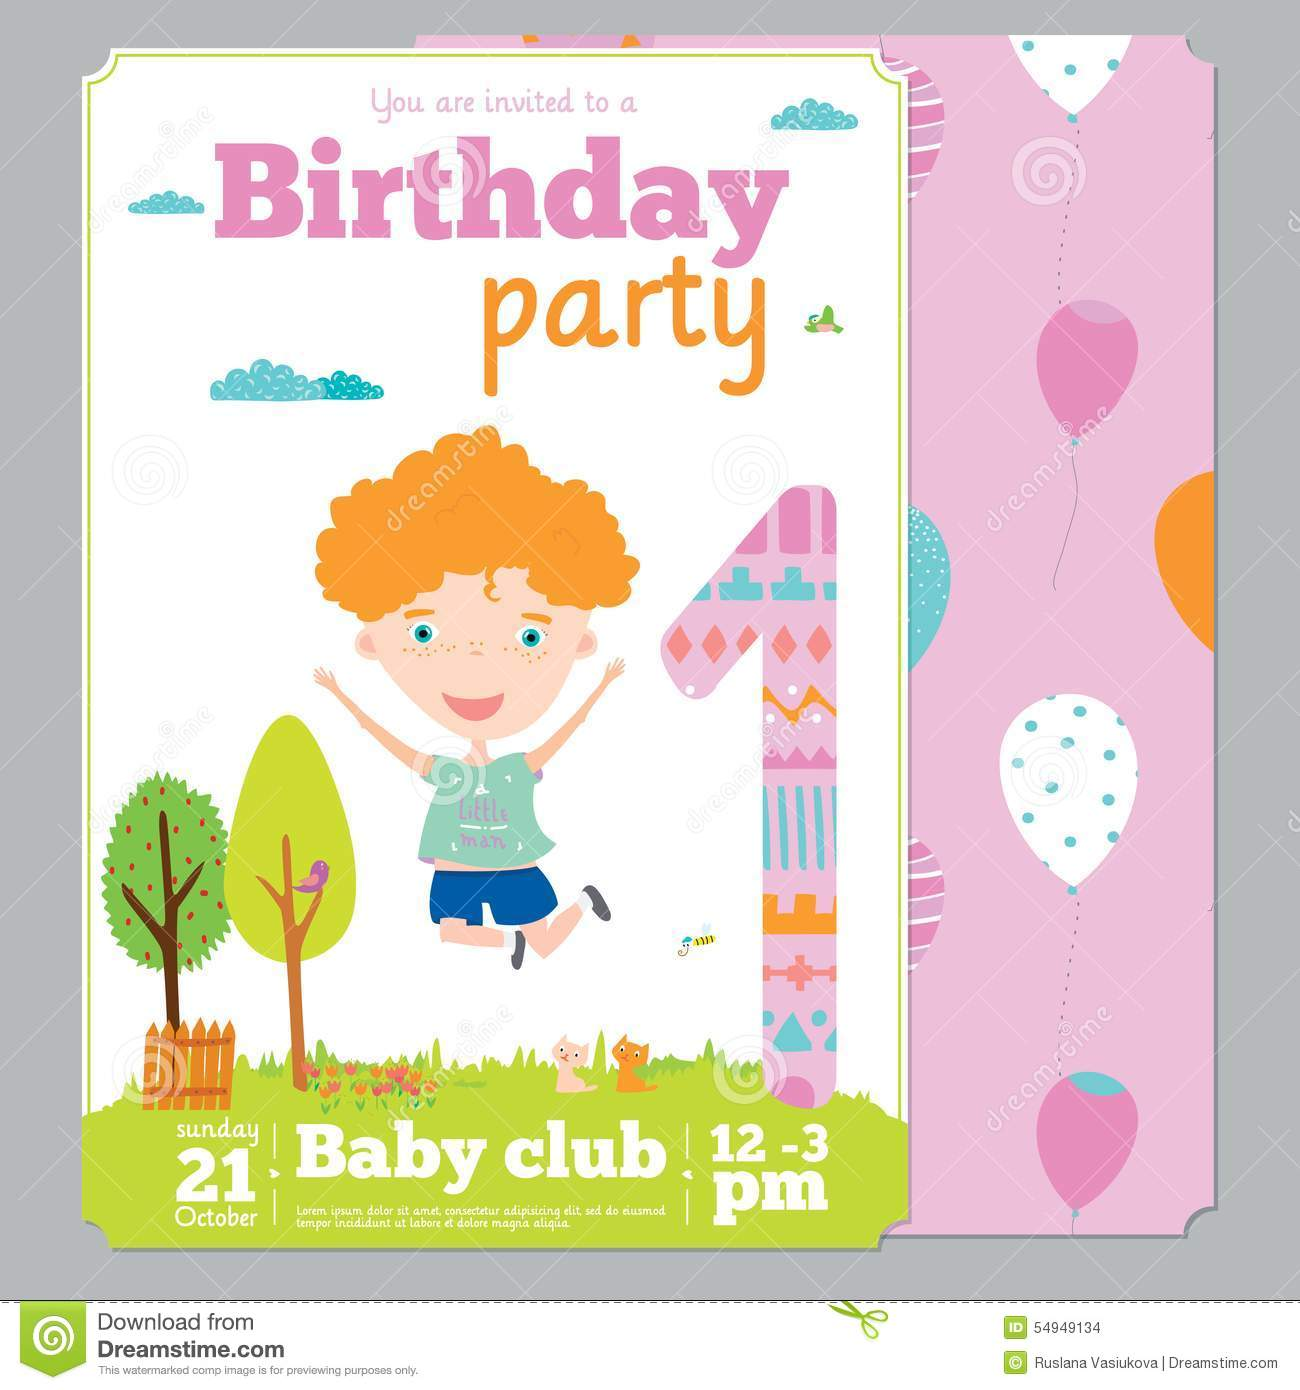 Birthday party invitation card template with cute stock vector download birthday party invitation card template with cute stock vector illustration of cute festive stopboris Images